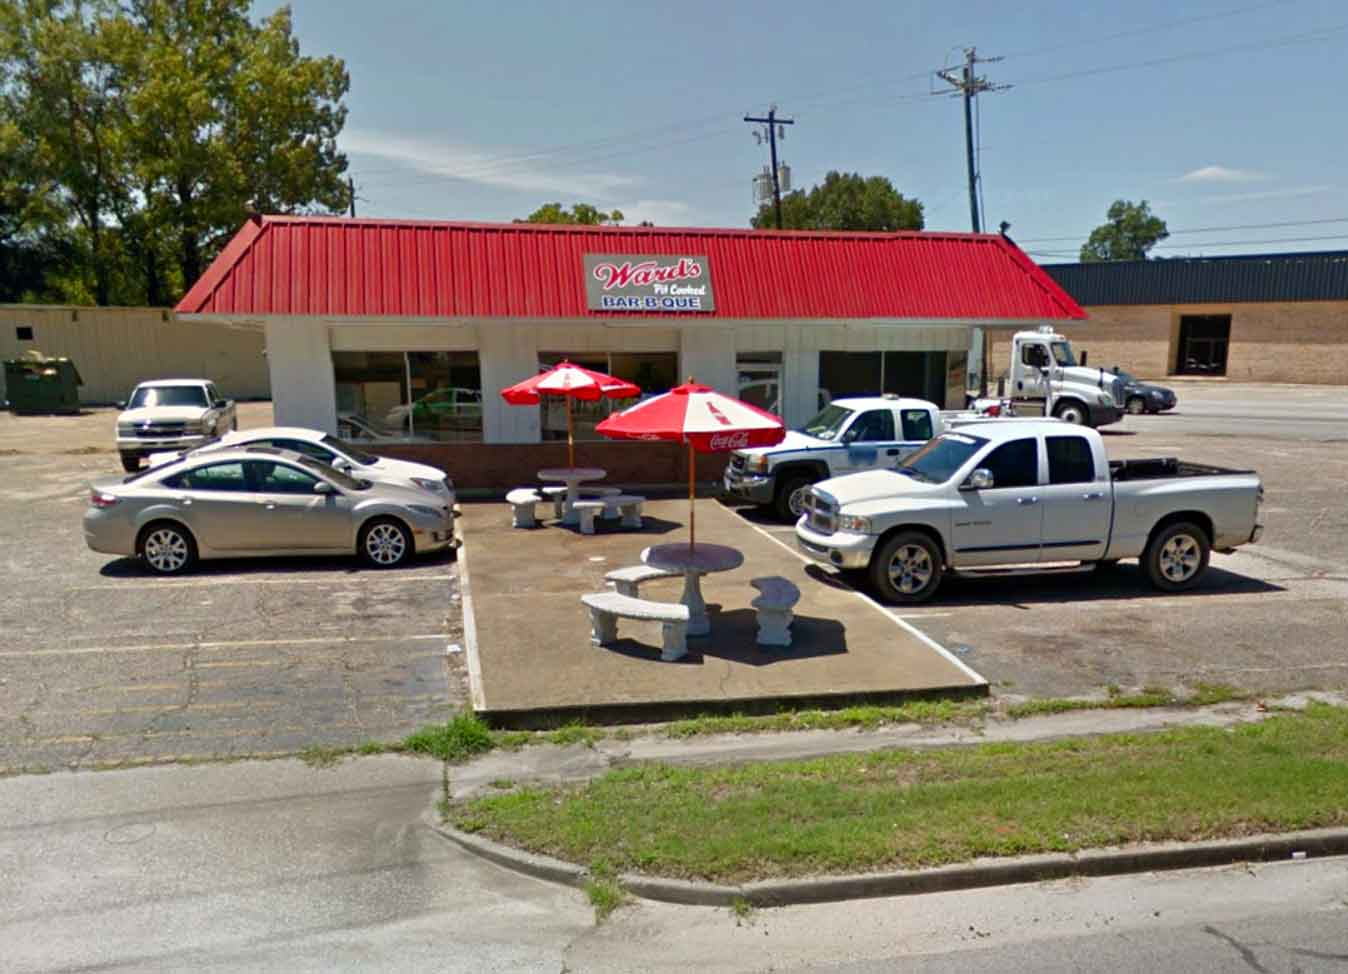 Ward's BBQ on Liberty in Sumter